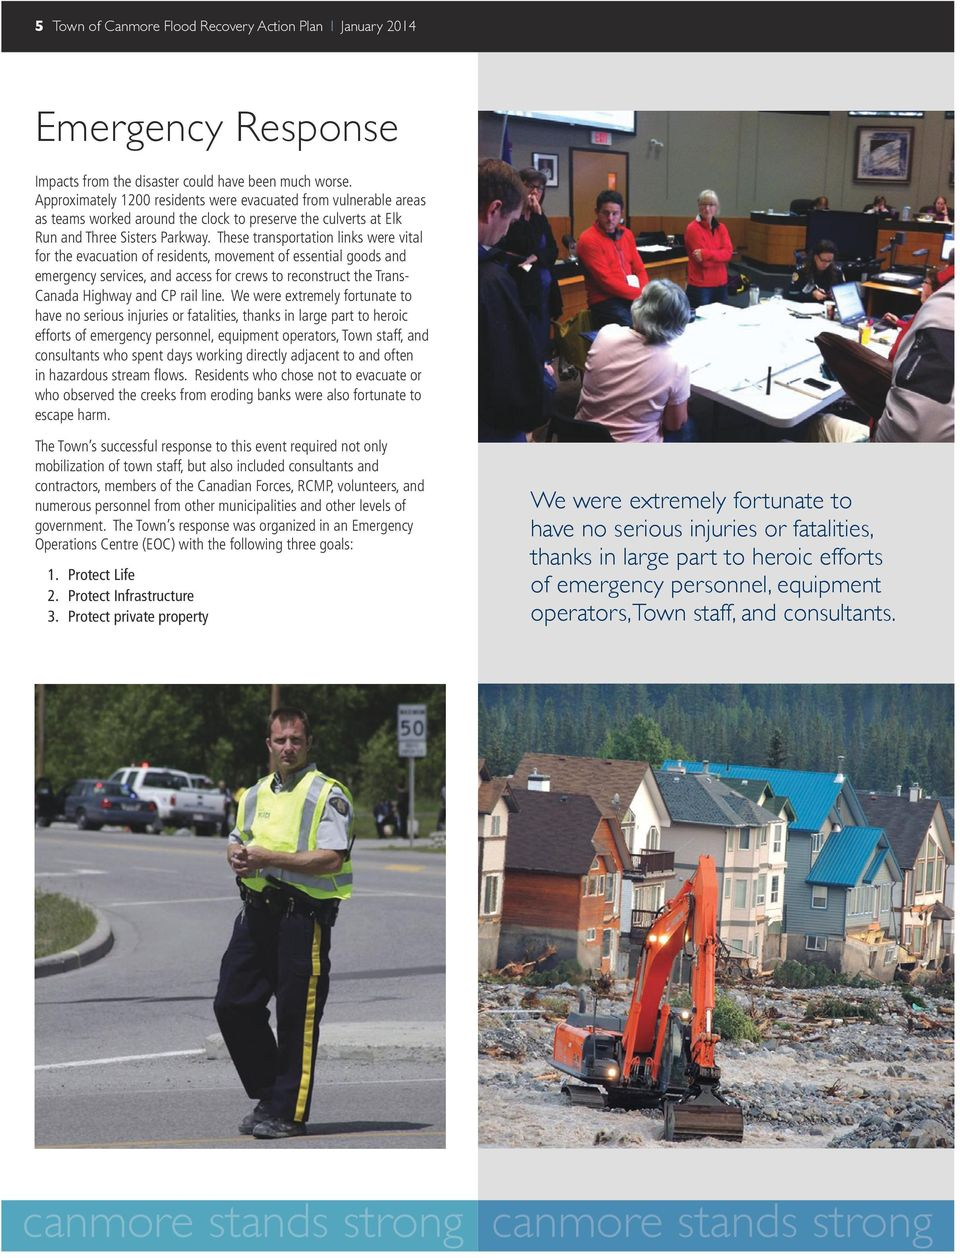 These transportation links were vital for the evacuation of residents, movement of essential goods and emergency services, and access for crews to reconstruct the Trans- Canada Highway and CP rail